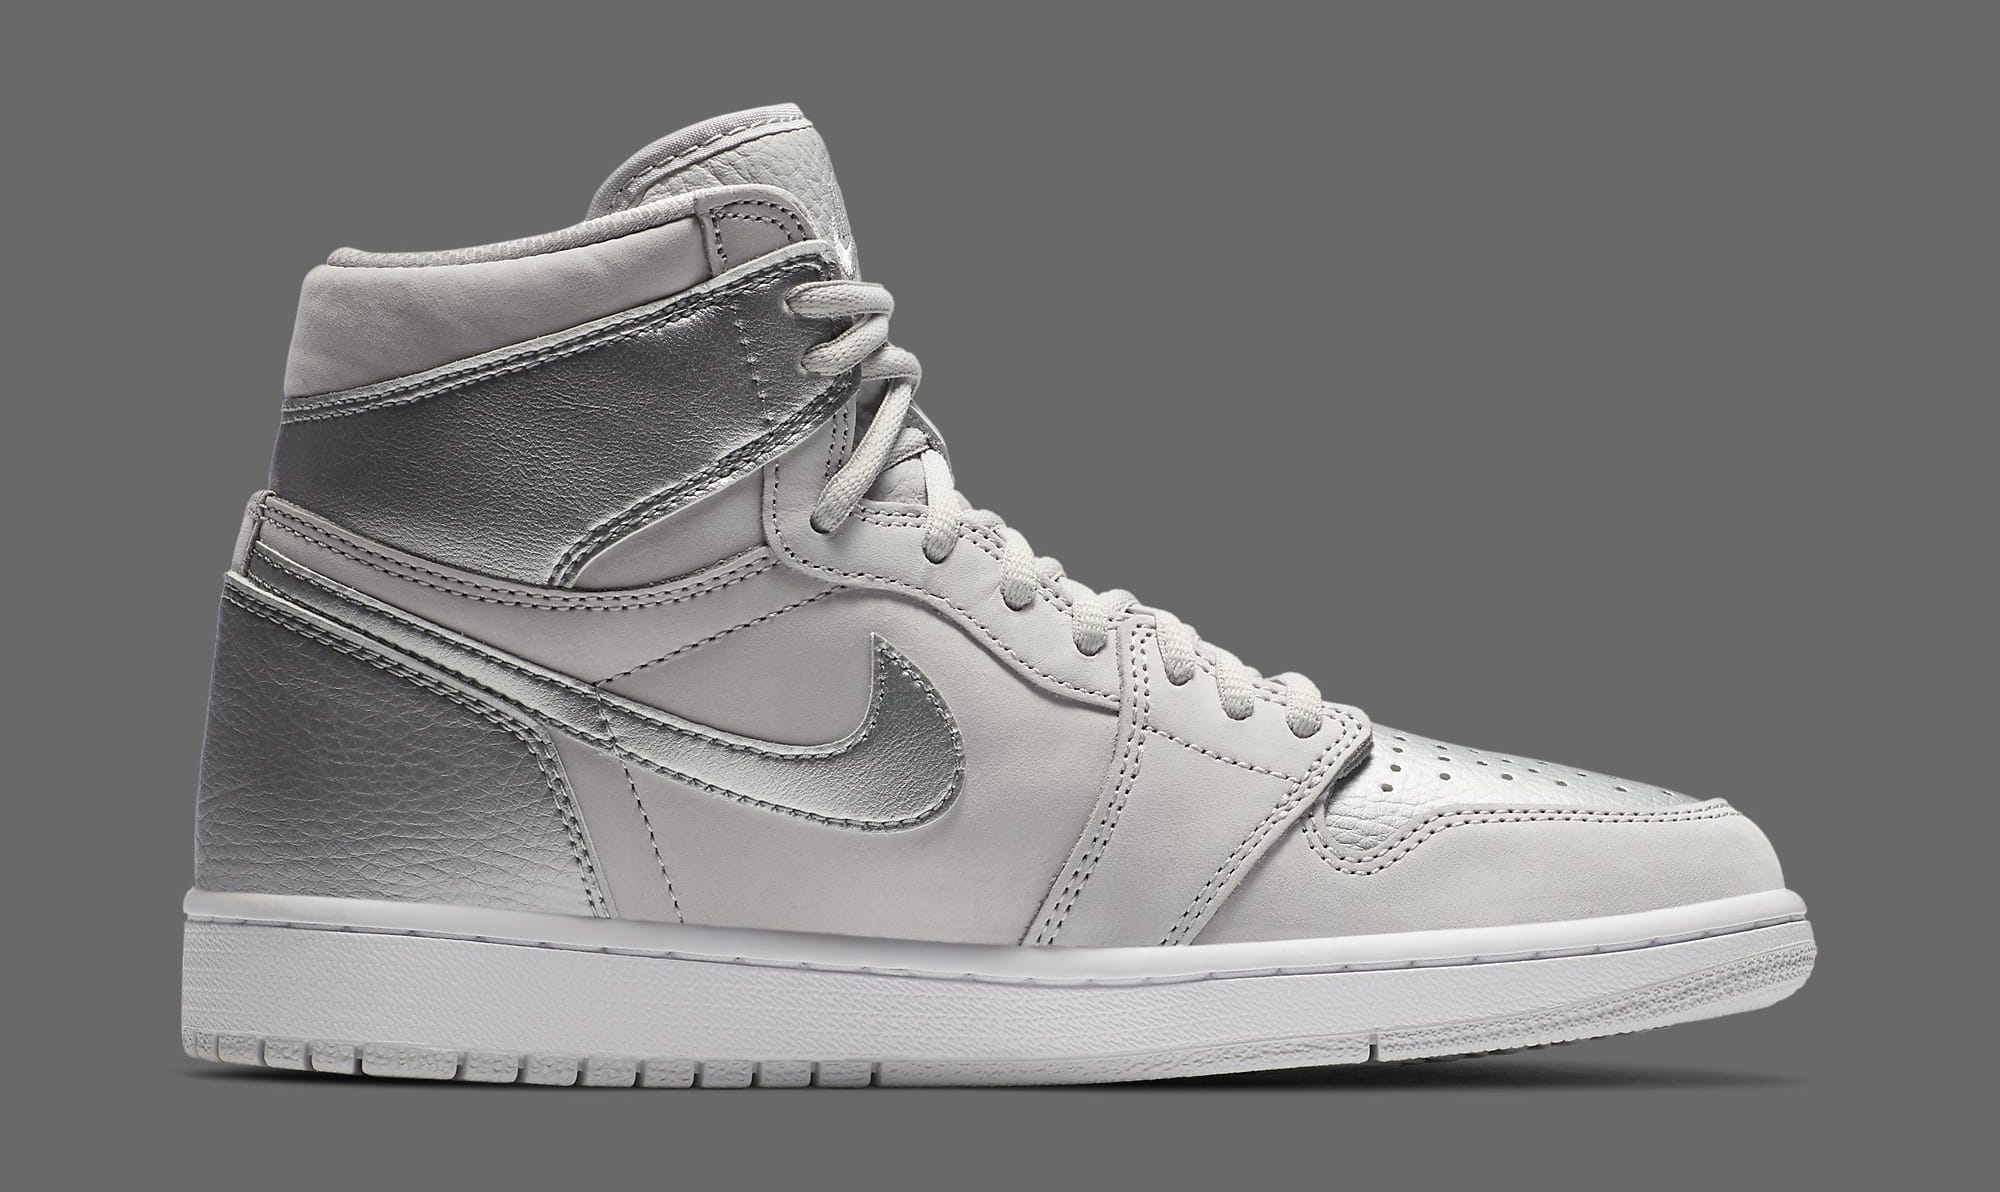 Air Jordan 1 Retro High OG CO.JP 'Metallic Silver' DA0382-029 Medial